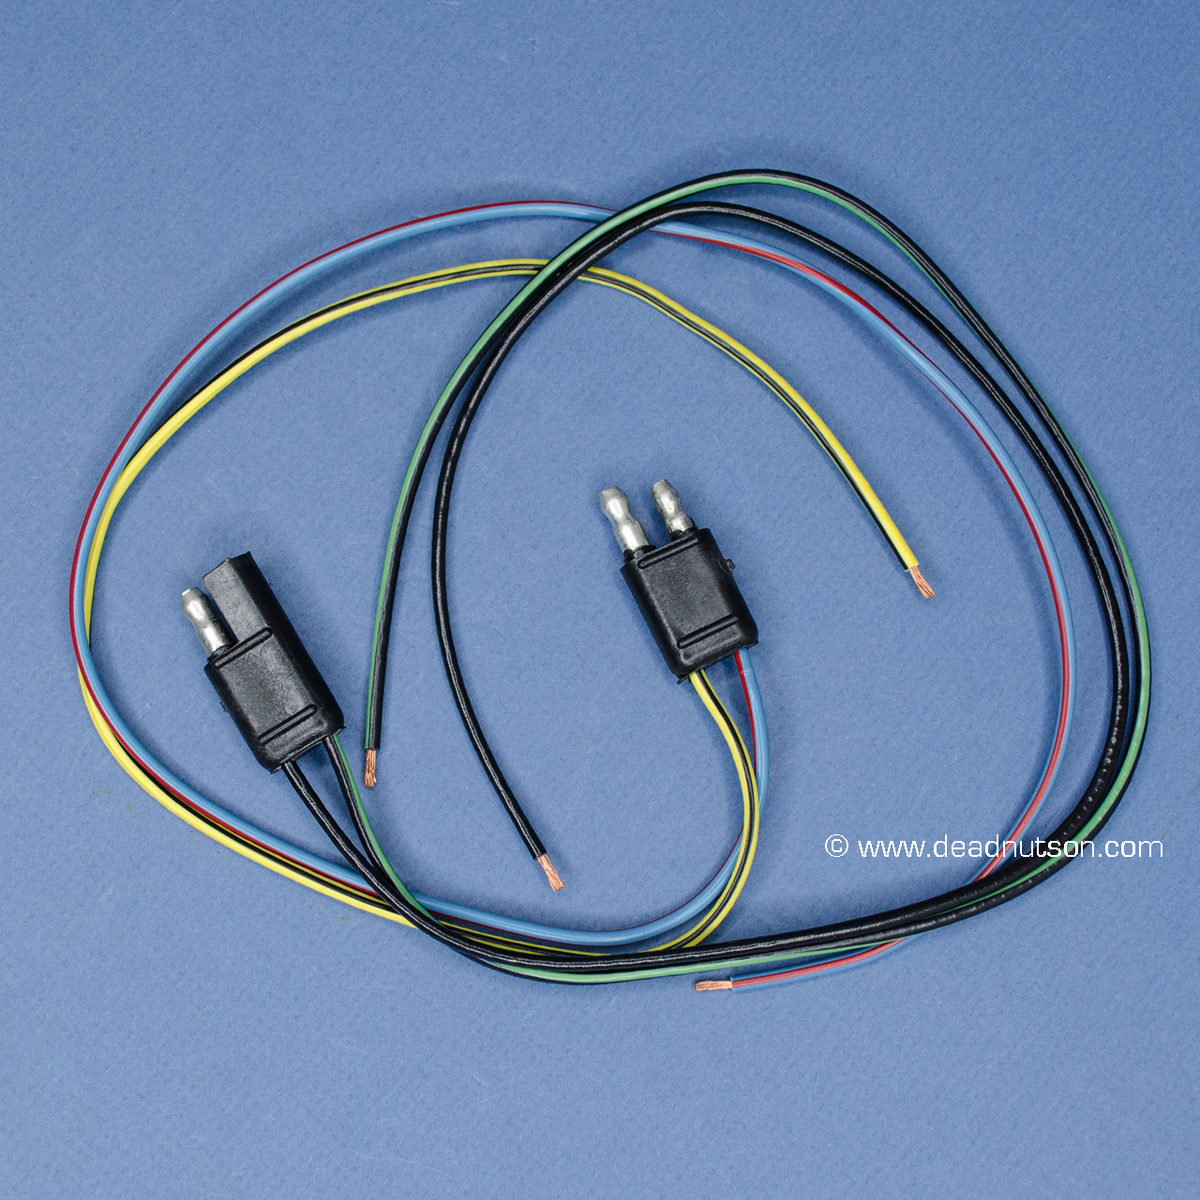 1967-70 Mustang AM Radio Wiring Repair Harness Set on home wiring, aluminium wire, canadian electrical code, power cable, electrical wiring in north america, western union splice, screw terminal, mineral-insulated copper-clad cable, knob and tube wiring, electrical wiring, electrical connector, electrical conduit, crimp connection, rat-tail splice, crocodile clip, ac power plugs and sockets,